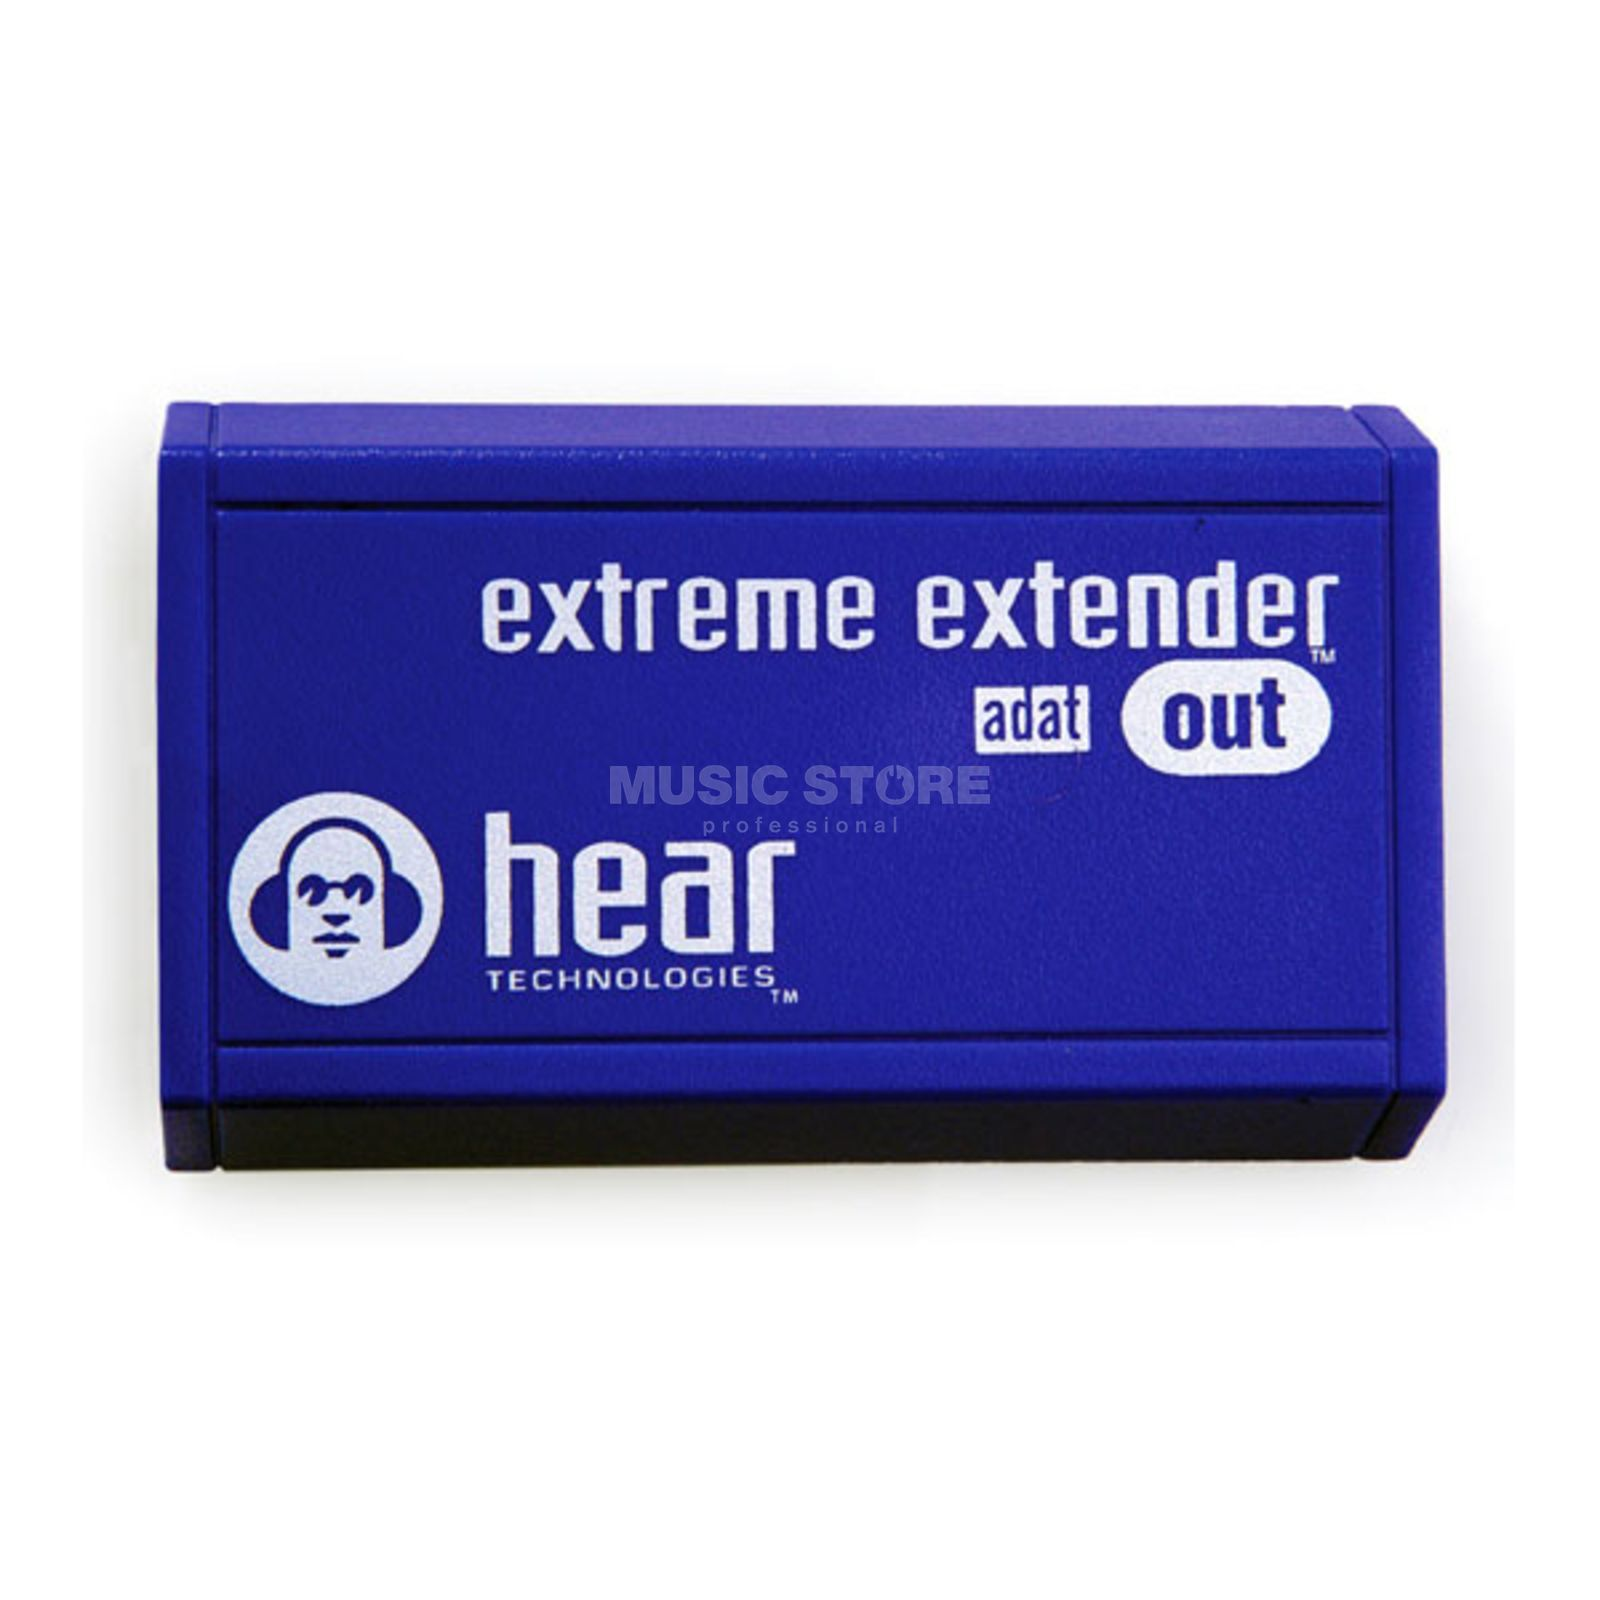 Hear Technologies Extreme Extender ADAT OUT  Product Image